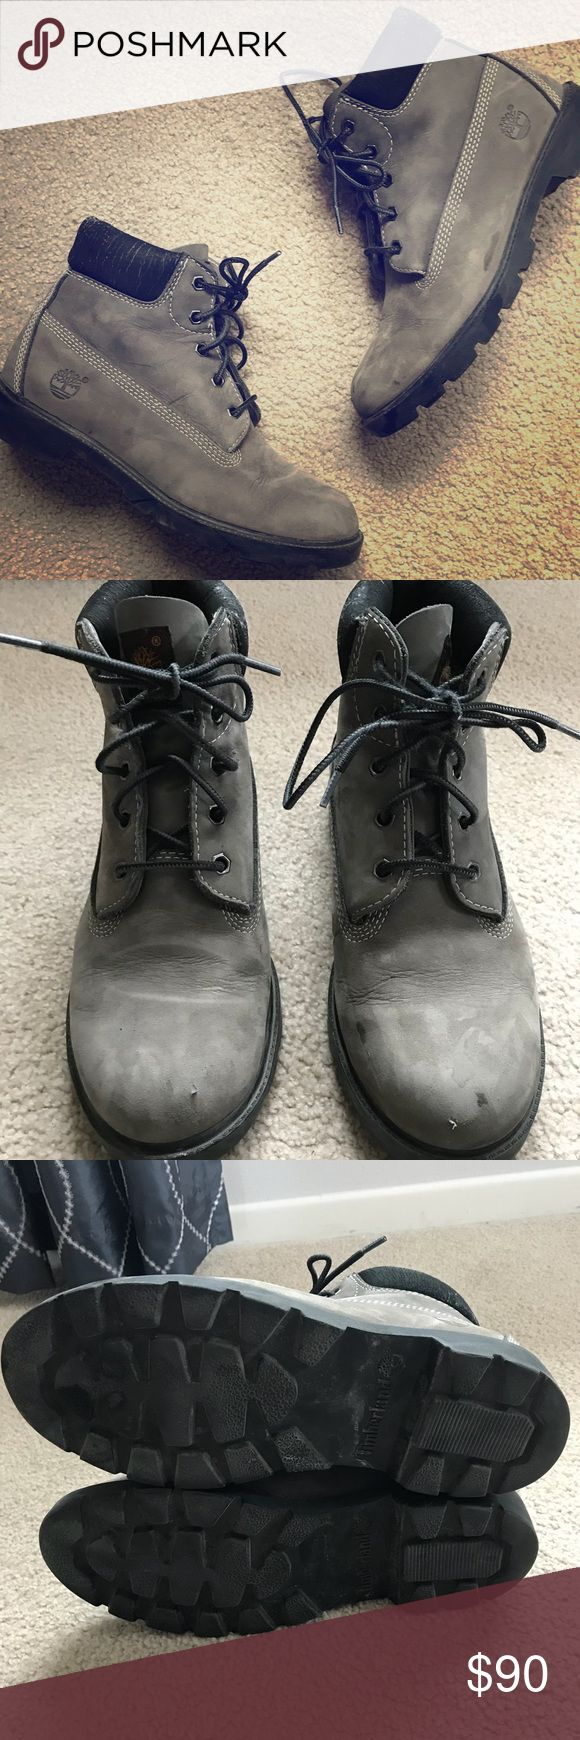 Timberland Boots Grey Suede Size 6 in men's, equivalent to 8 in woman's. Worn a few times but still in good condition (see pictures).  I just have too many boots and want to sell. Retail was $190. Feel free to ask any questions and offers are welcomed😊 Timberland Shoes Boots